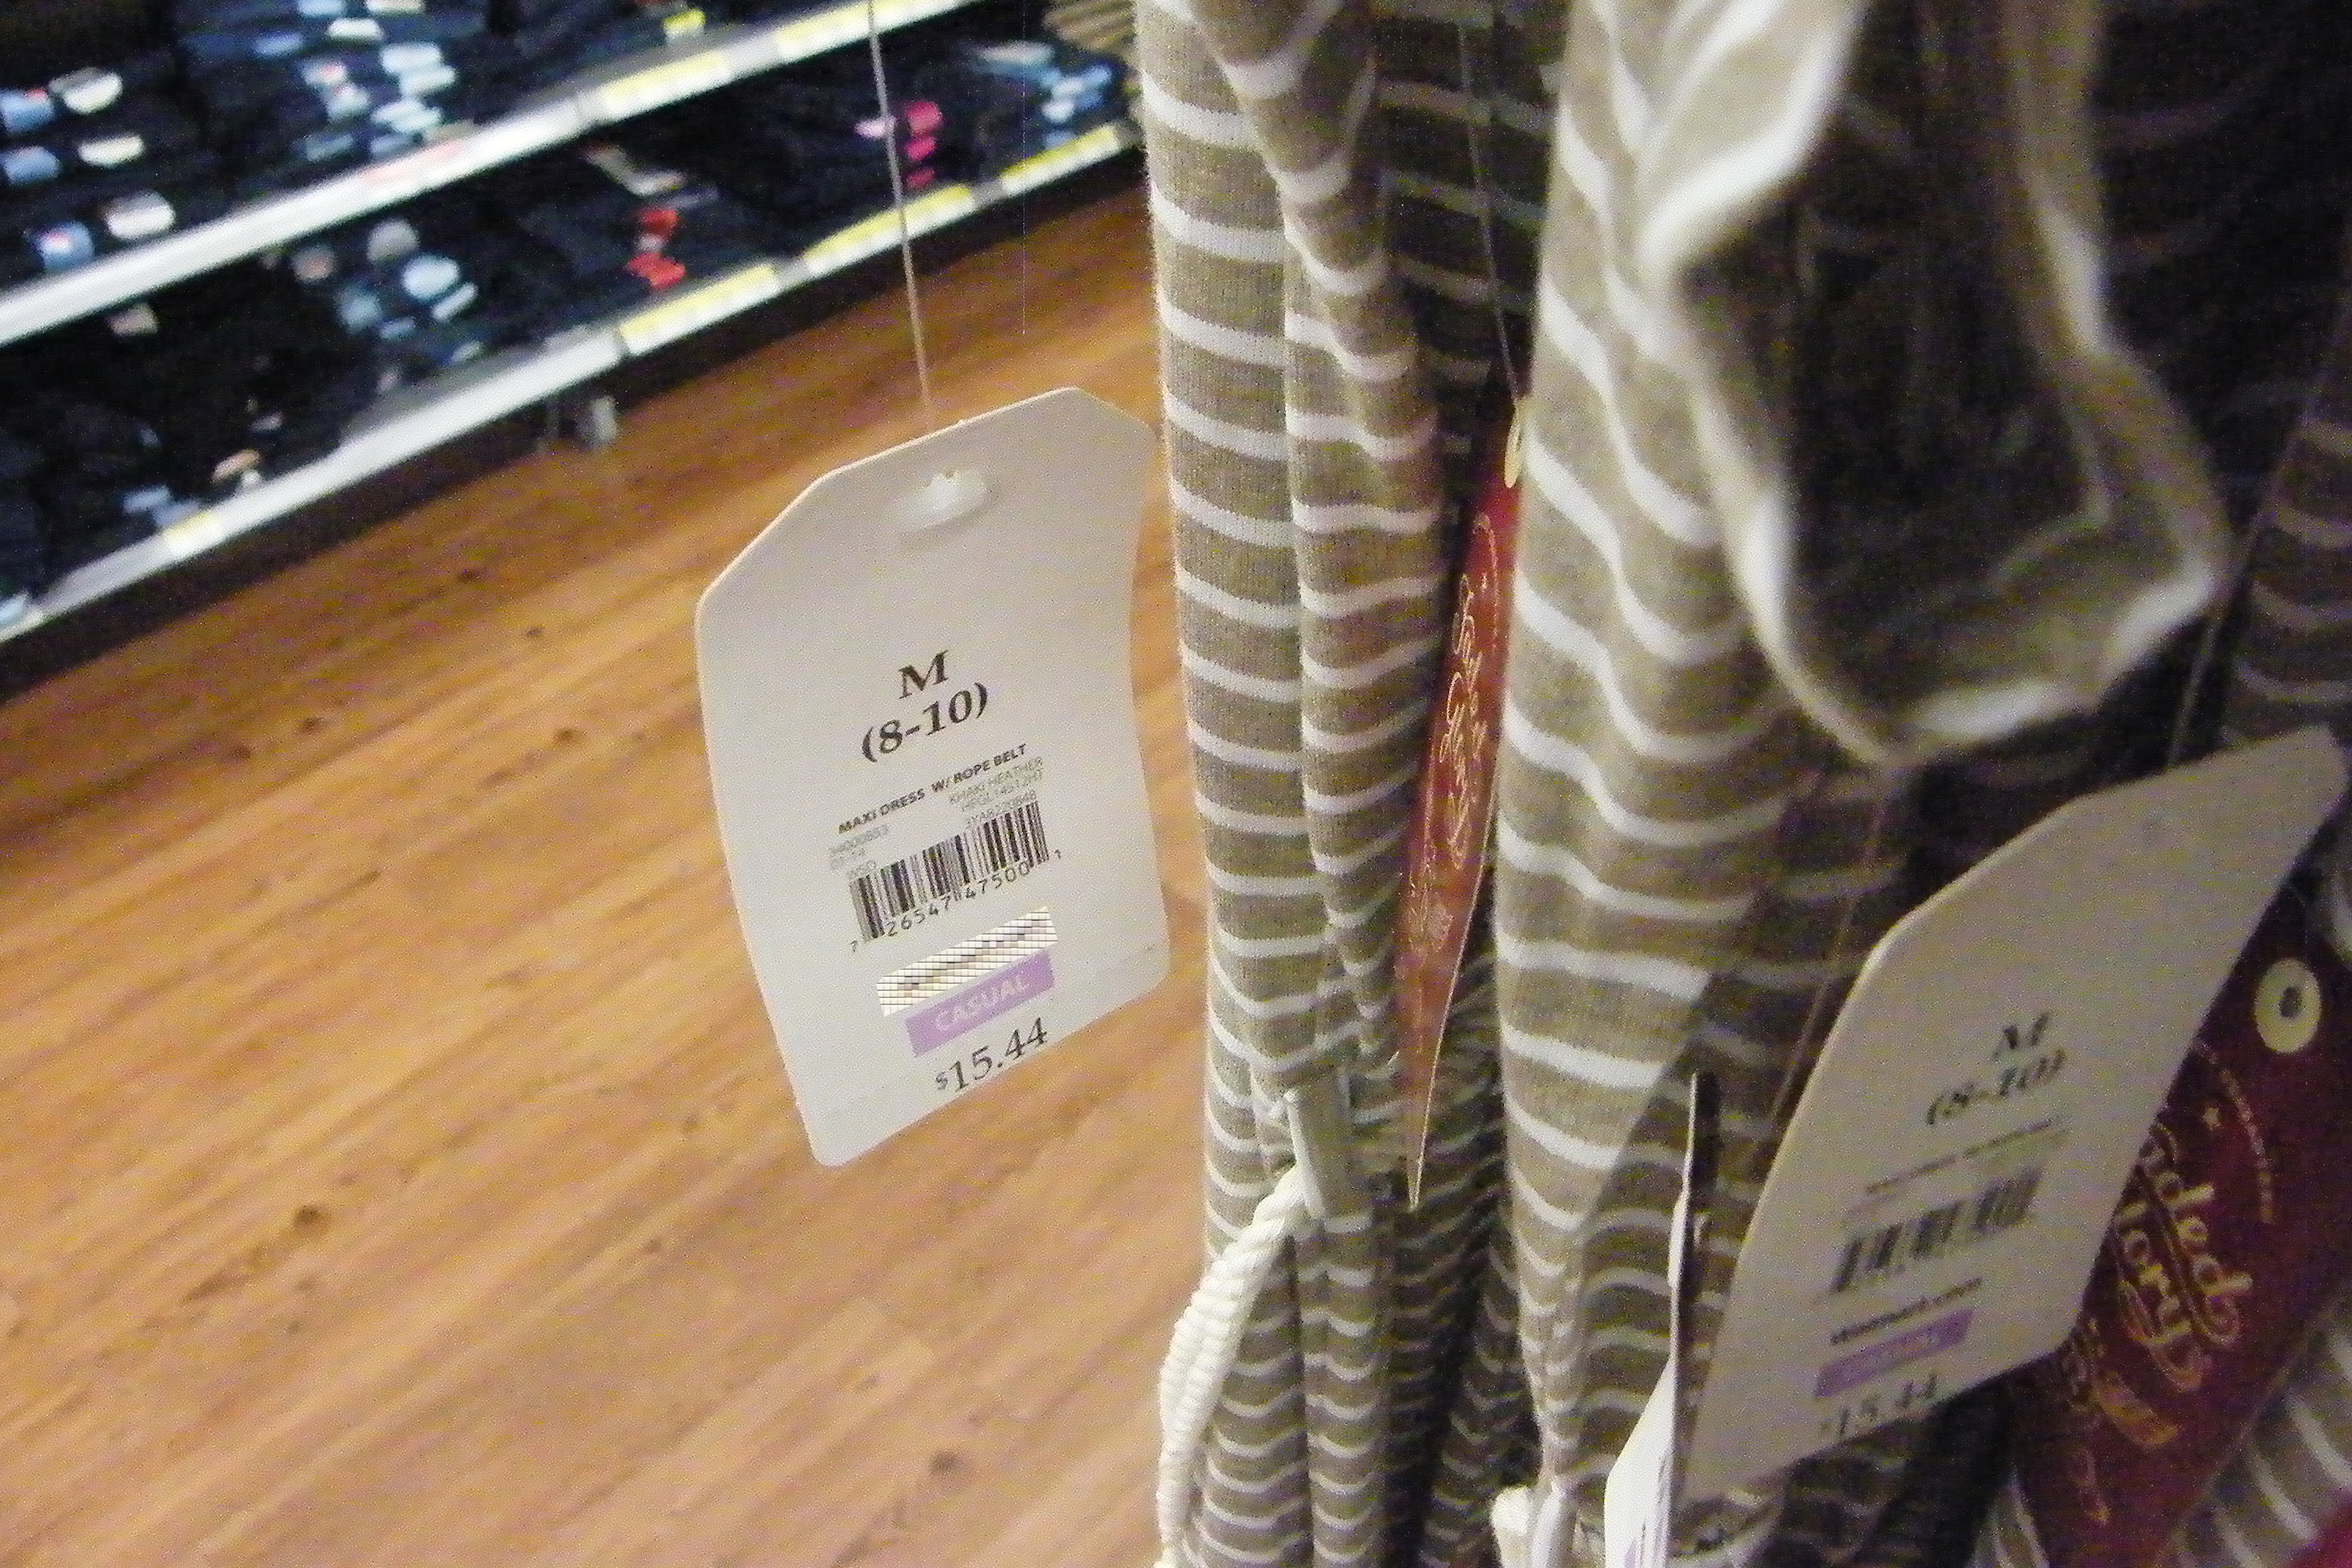 bd816af01d79 How to Attach Price Tags to Clothes | Bizfluent